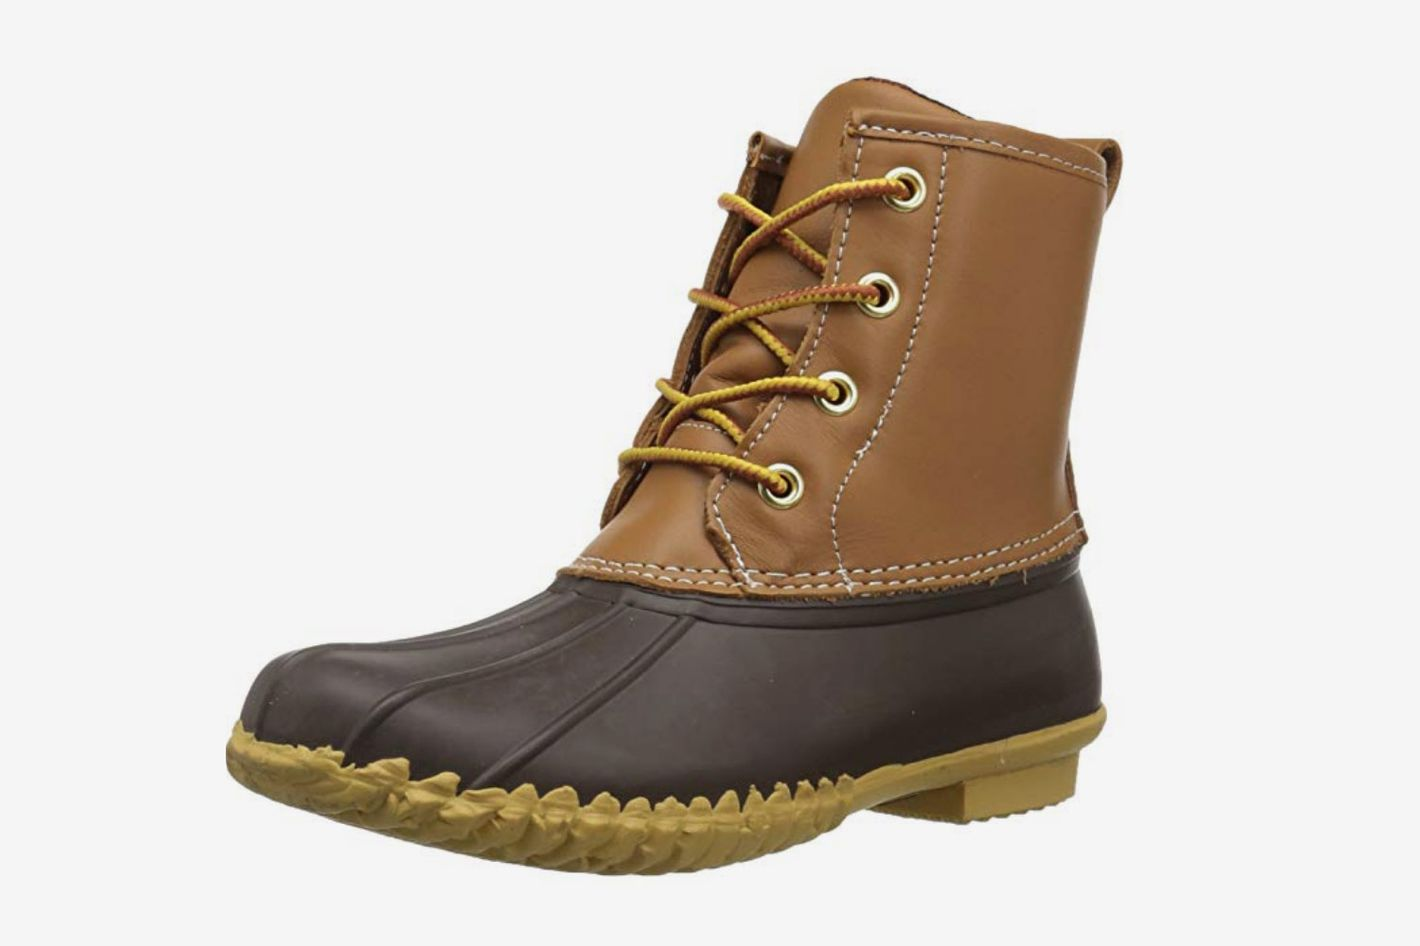 206 Collective Women's Rainier Duck Boot Rain